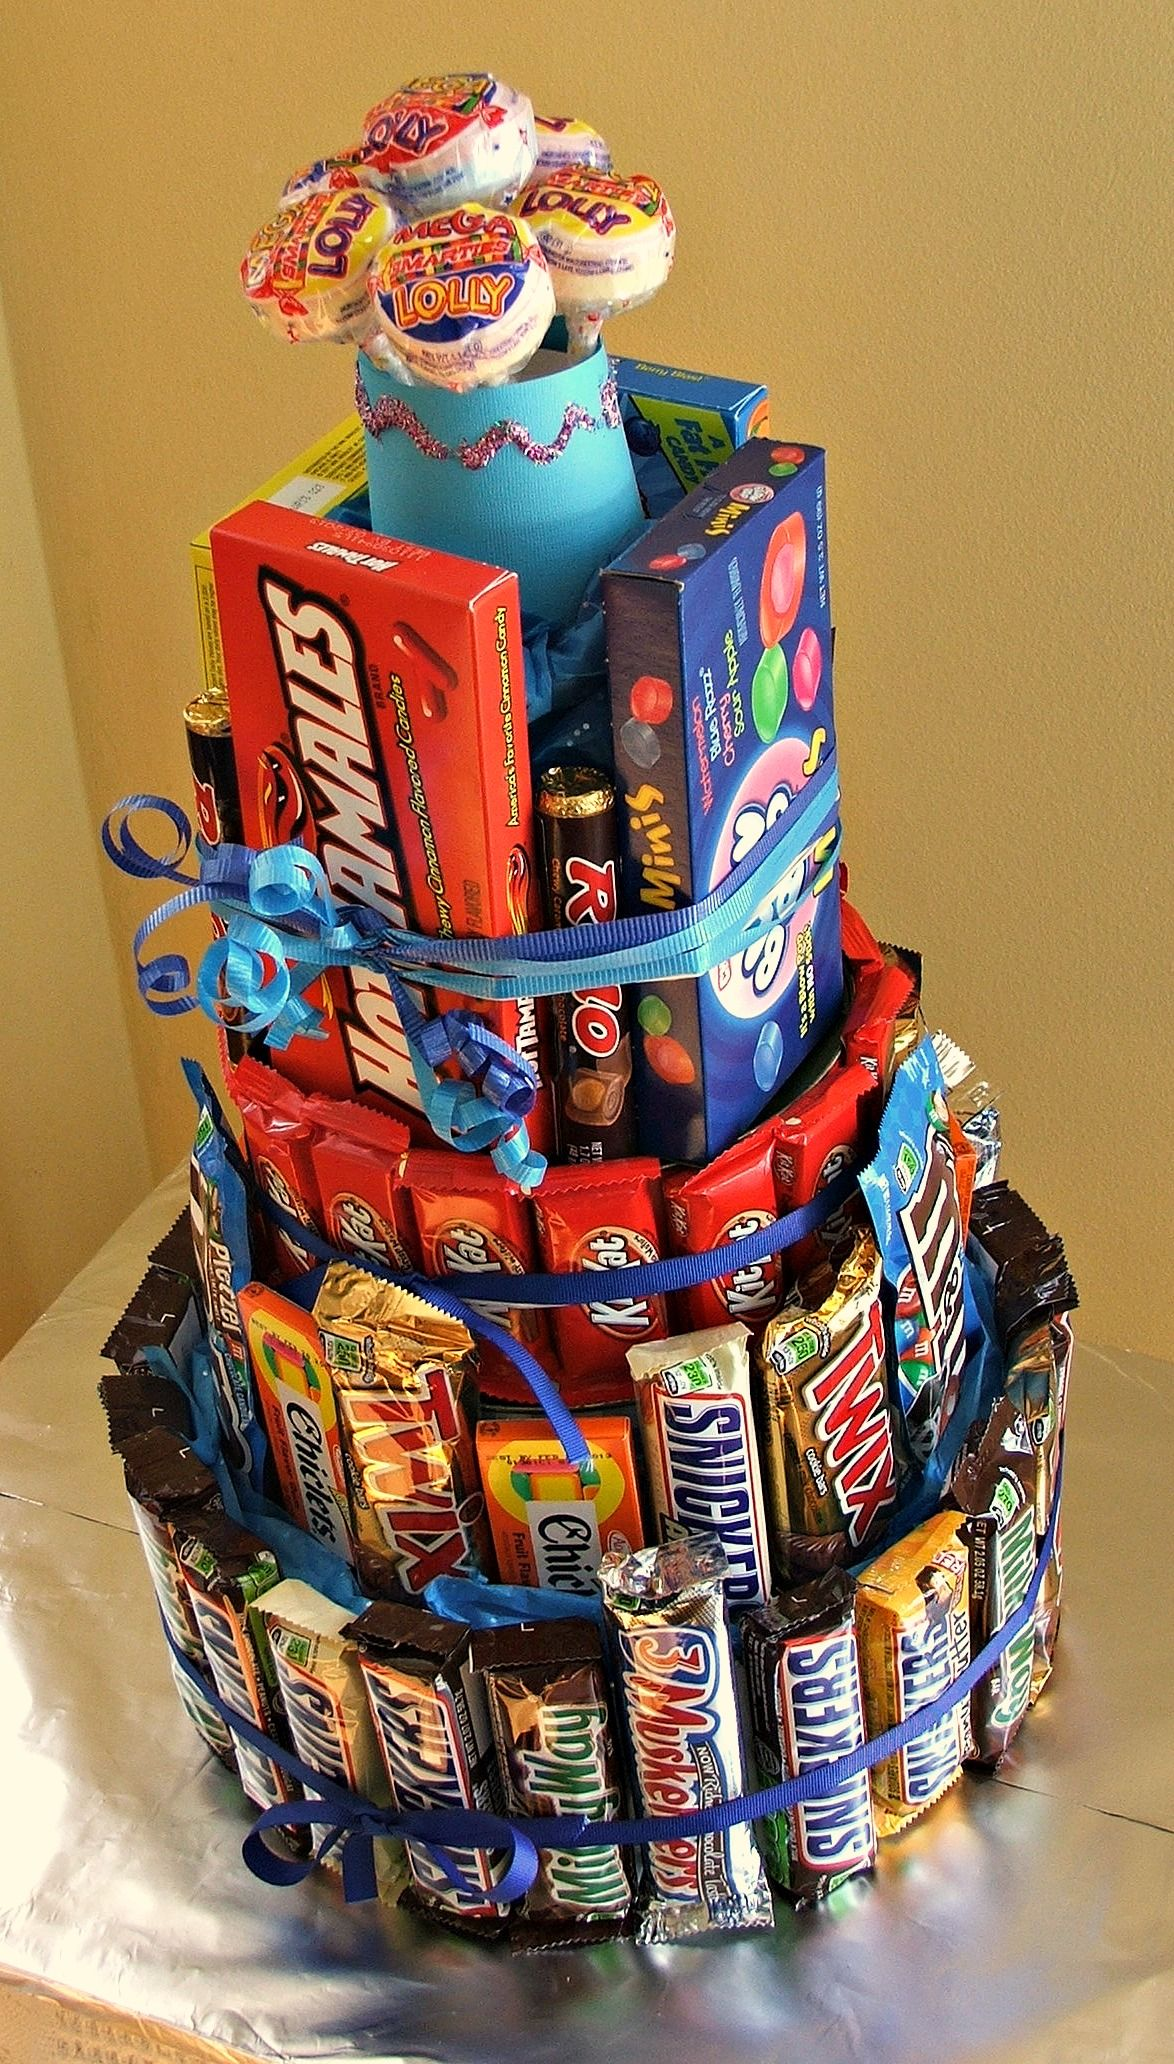 Candy Bar Cakethis Is The Cake Im Asking For My Birthday With All Favorite Candies On ItYUM